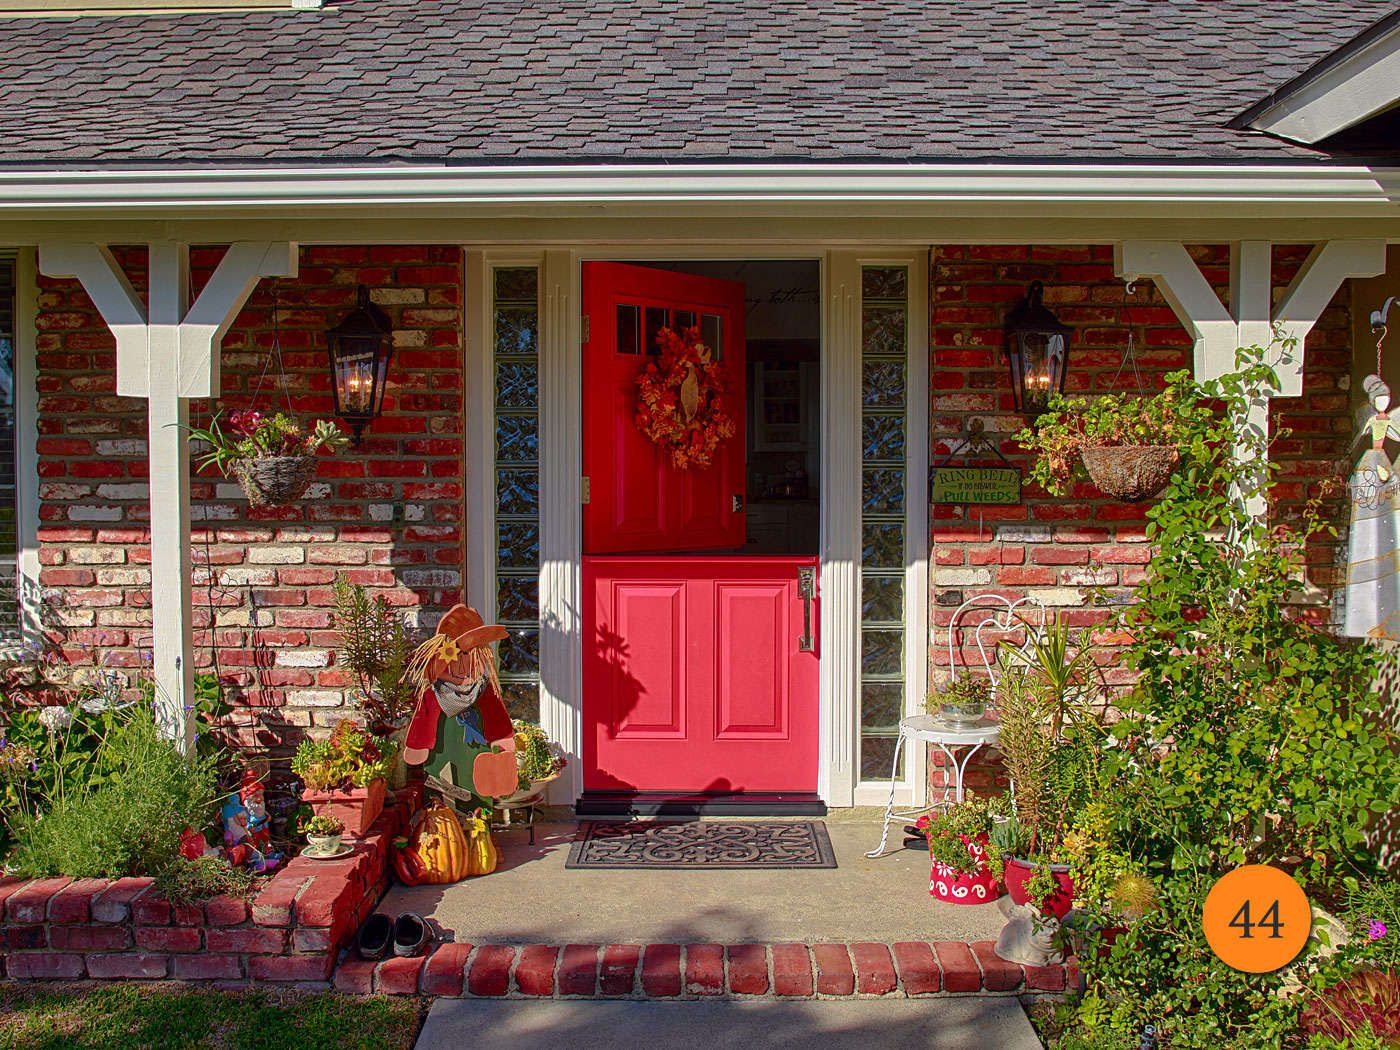 Single Fiberglass Red Dutch Door With Split Finish Paint Plastpro Model Top Leaf 4 Lite Clear Glass And Panel Bottom Exterior Painted Ink